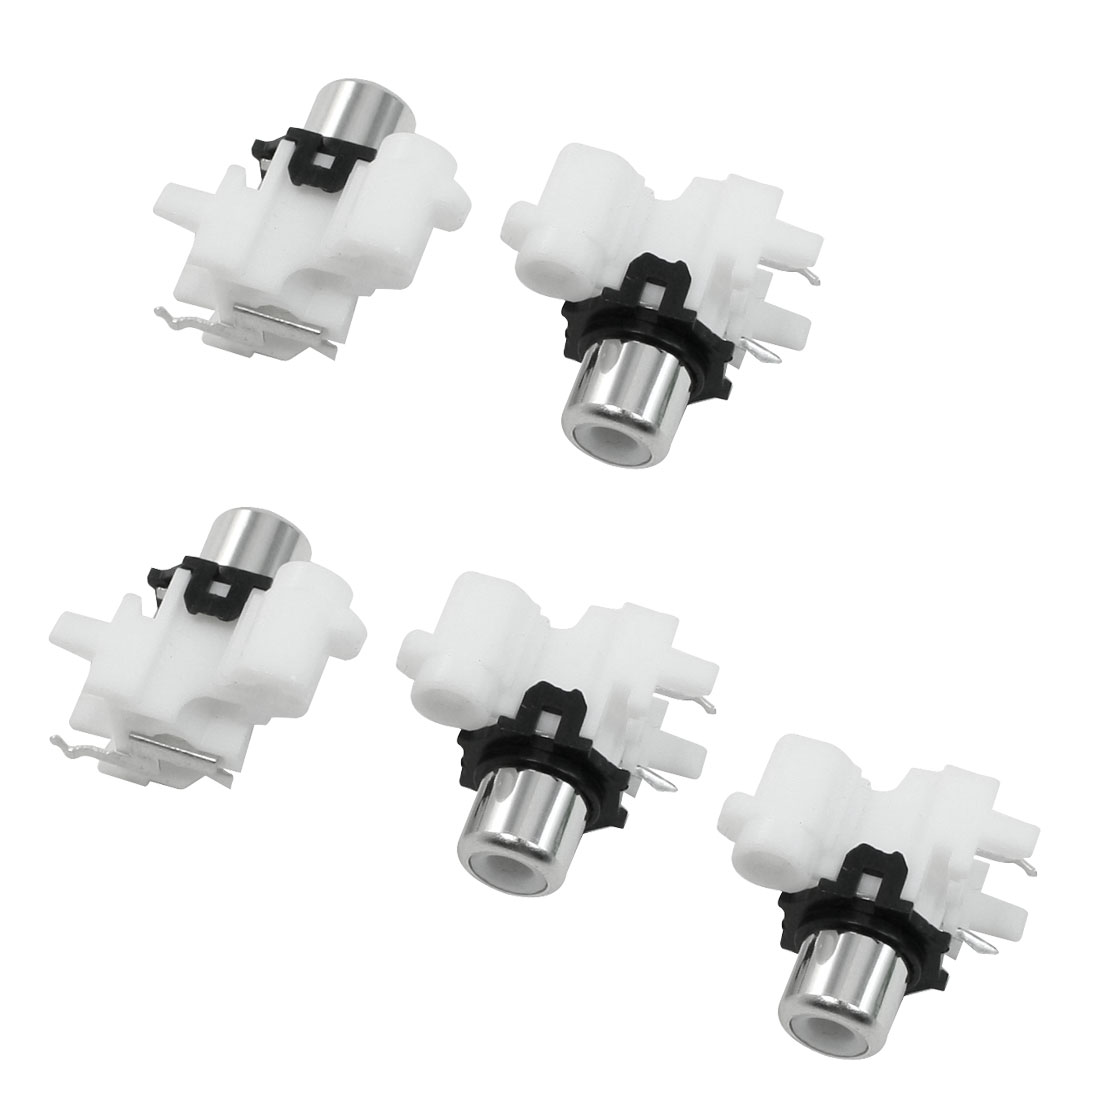 5 Pcs White Black Dual Female Jack Connector Adapter for Audio Video